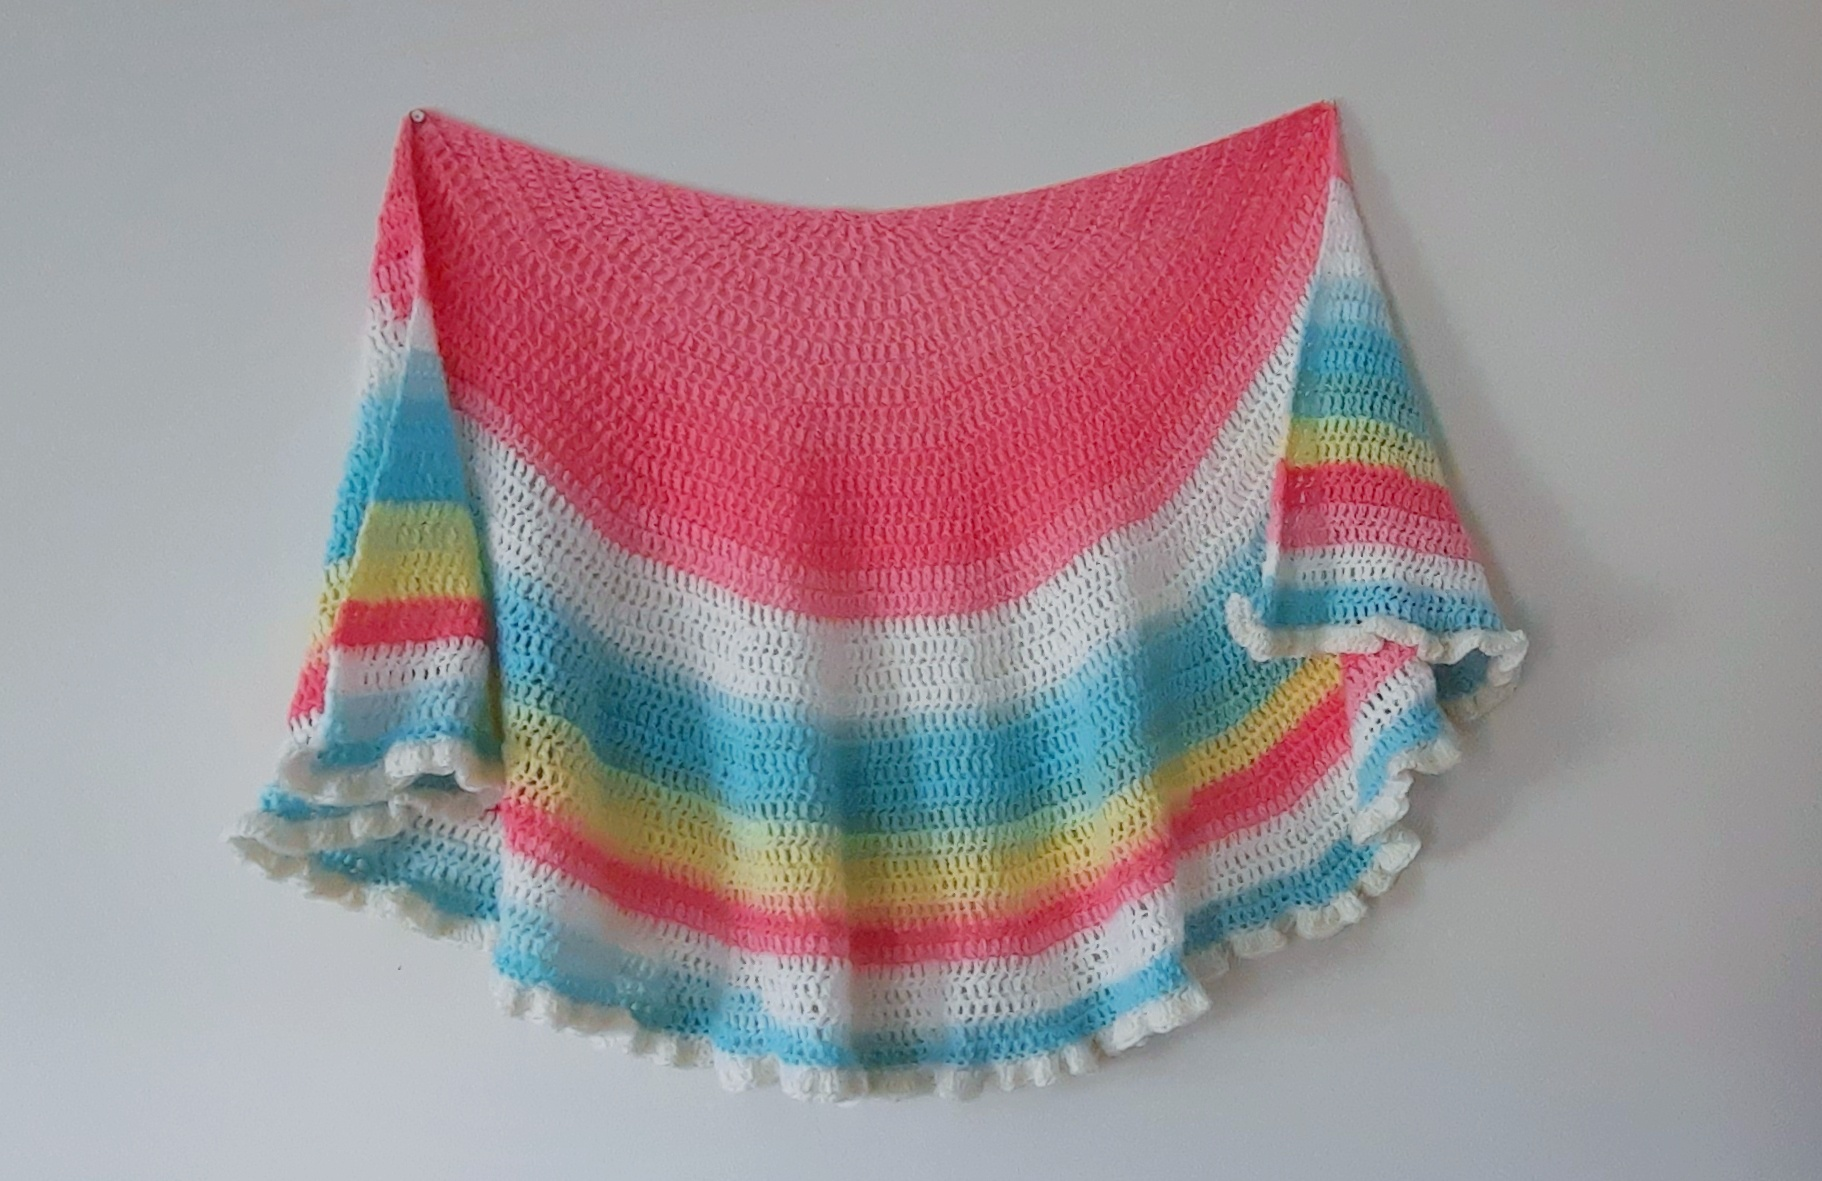 Crochet The Polina Half Circle Shawl